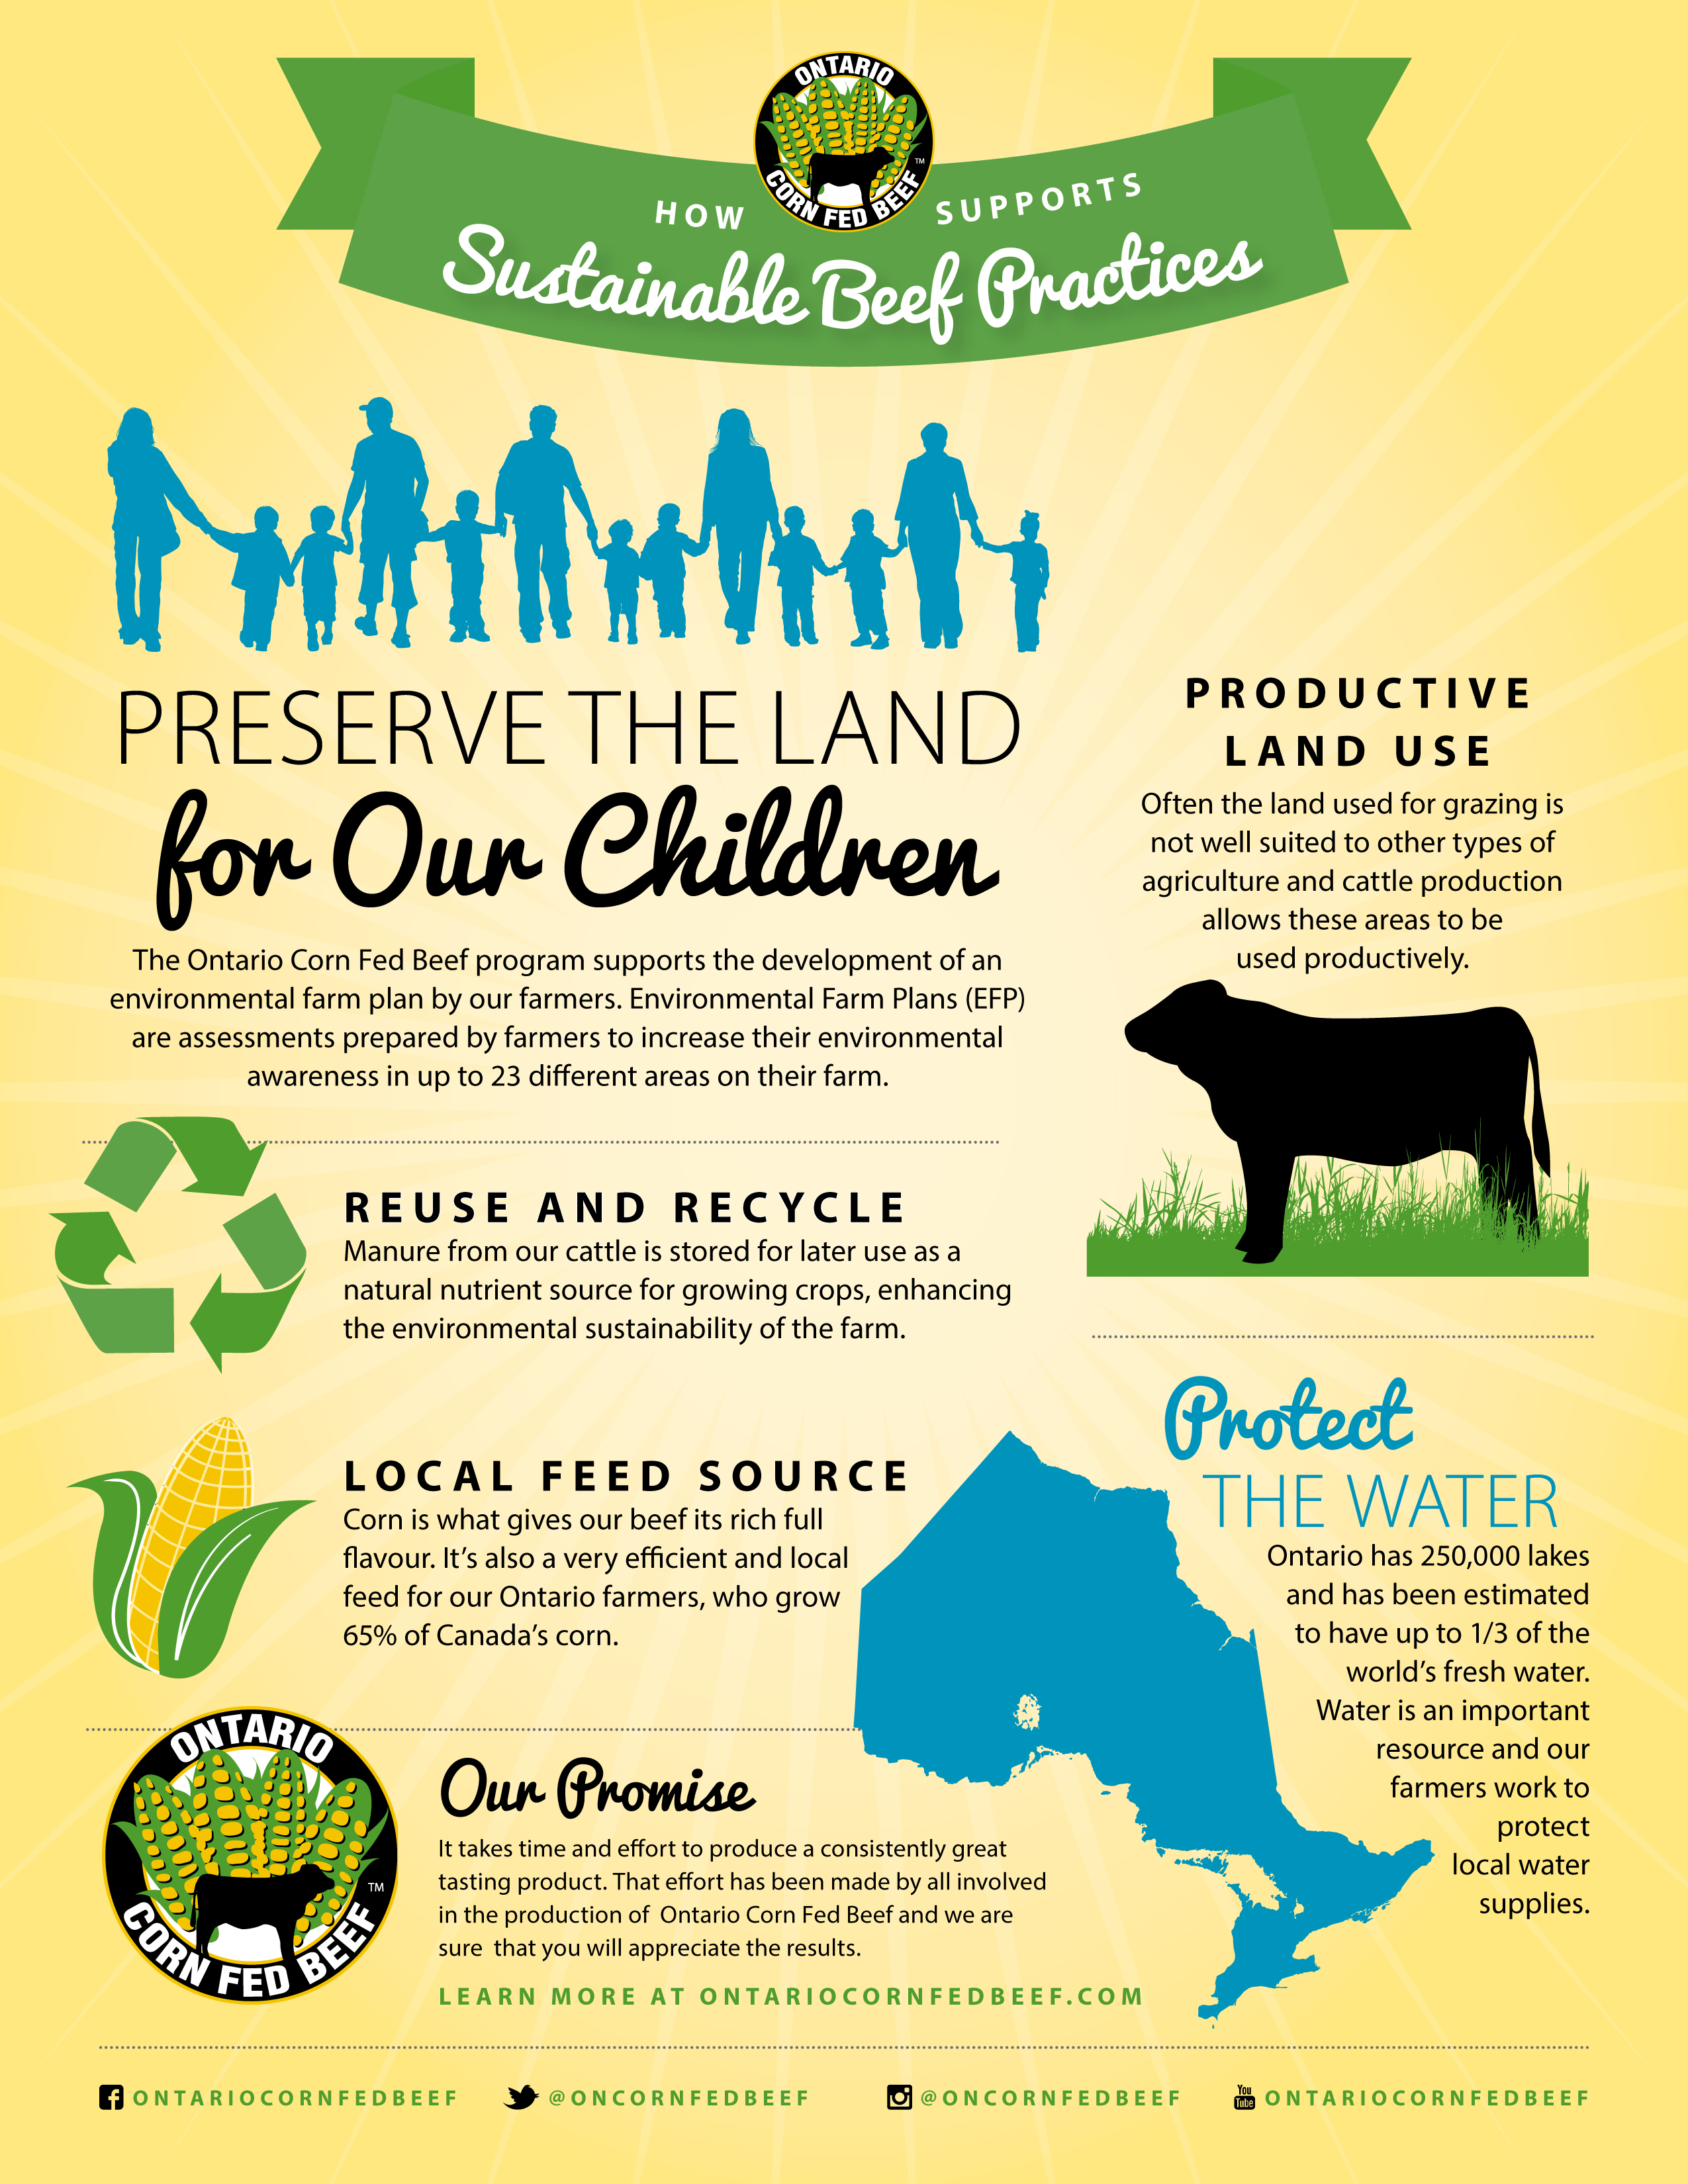 ocfb_infographic_sustainablefarming_web